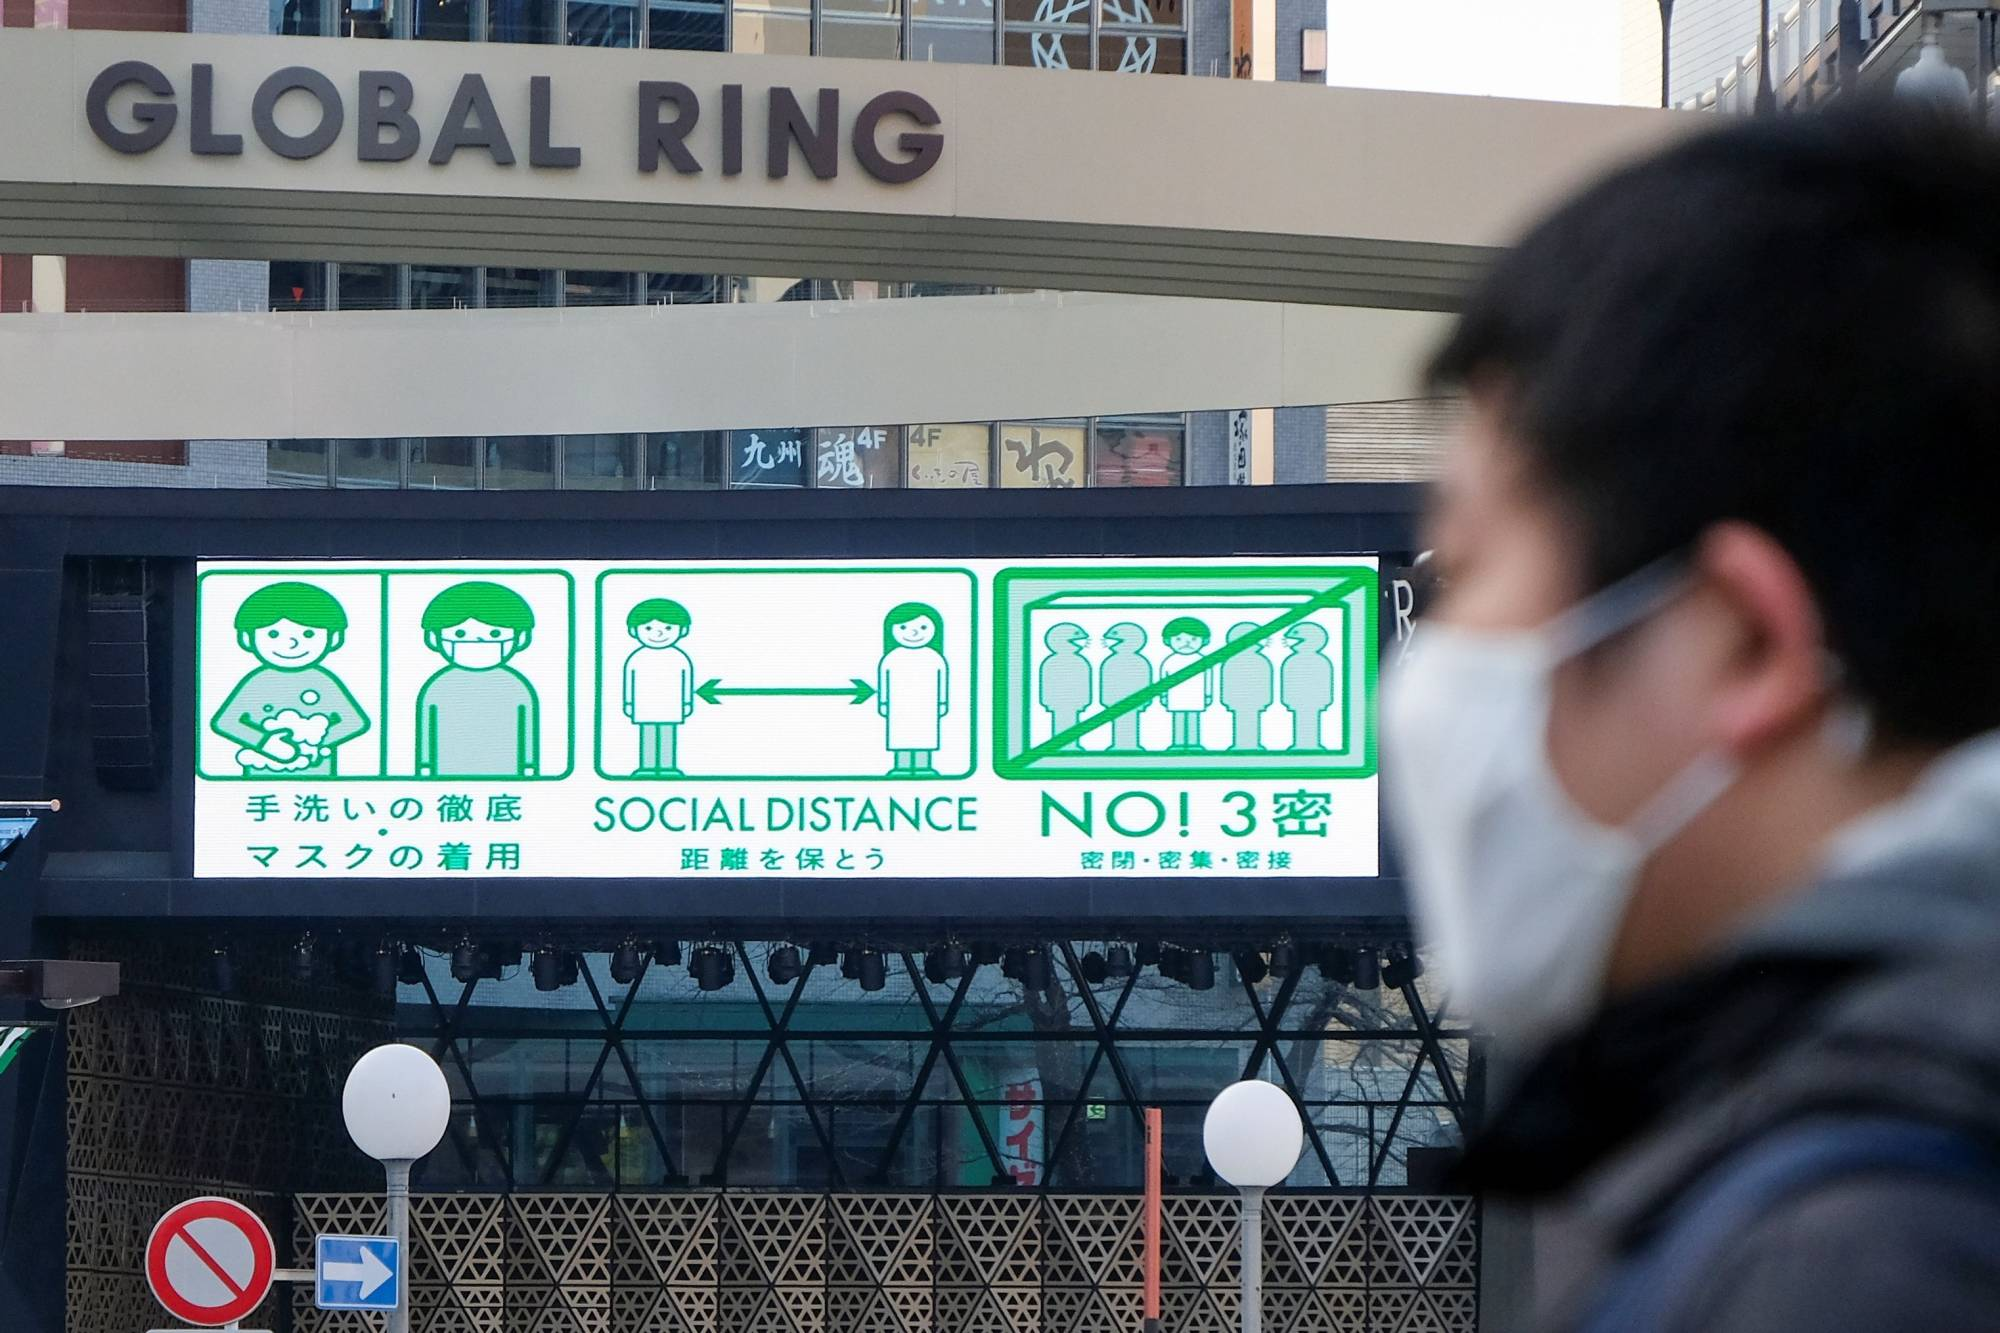 A display at a station in Tokyo promotes social distancing. Tokyo reported 970 new cases of COVID-19 on Tuesday. | AFP-JIJI